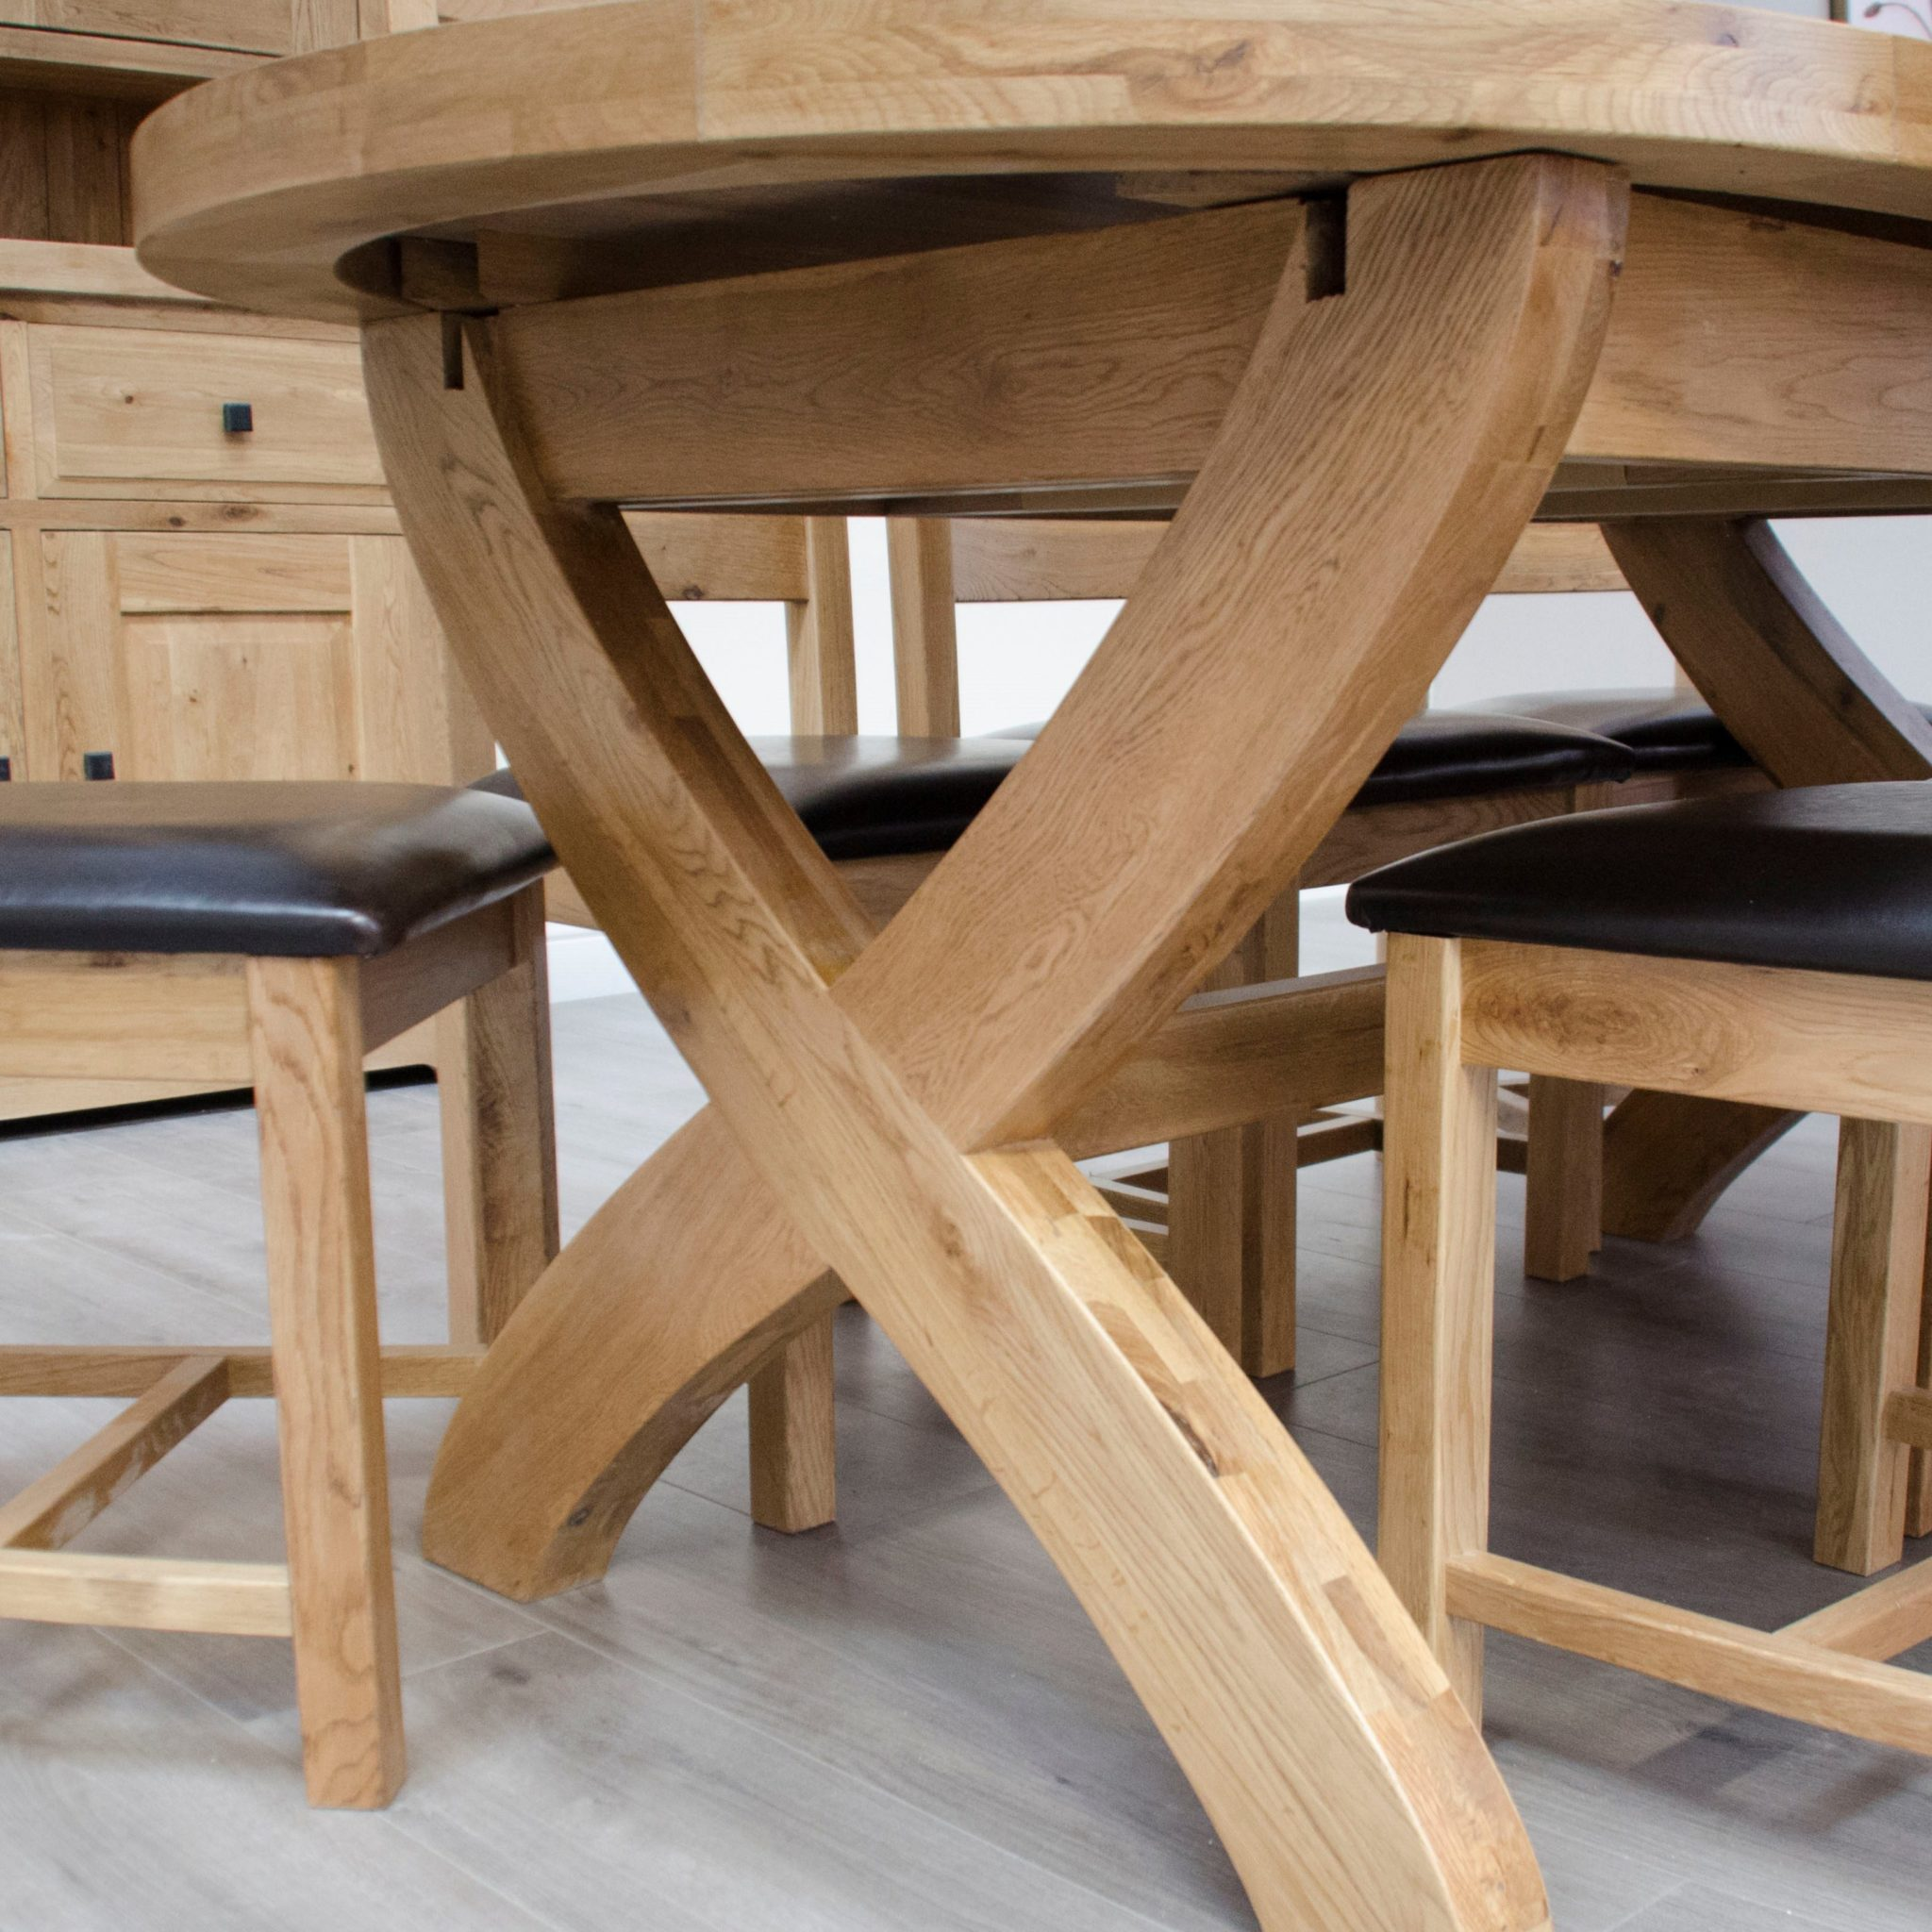 Melford Solid Oak Oval X Leg extending dining table, 180cm closed and extends to 280cm with 2 leaves.